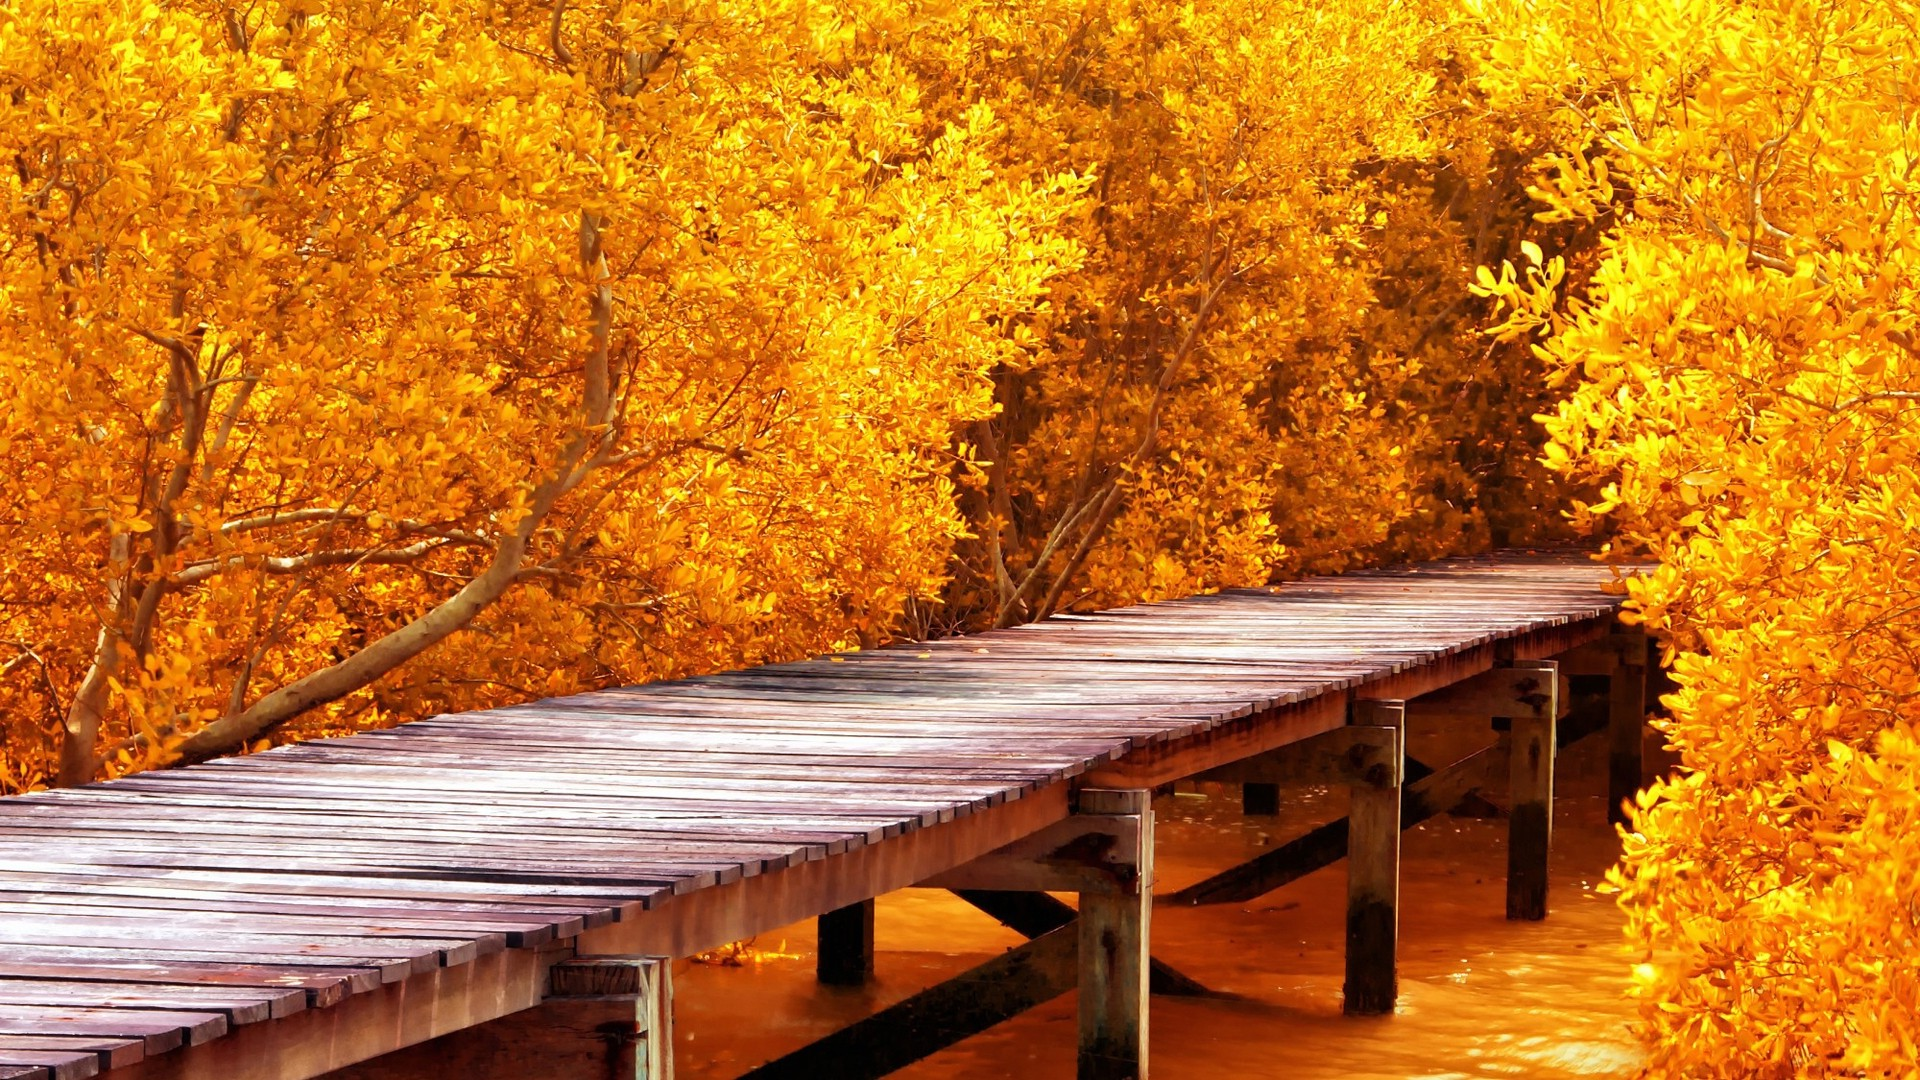 Fall Leaves Hd Mobile Wallpaper Nature Landscape Pier Water Wooden Surface Trees